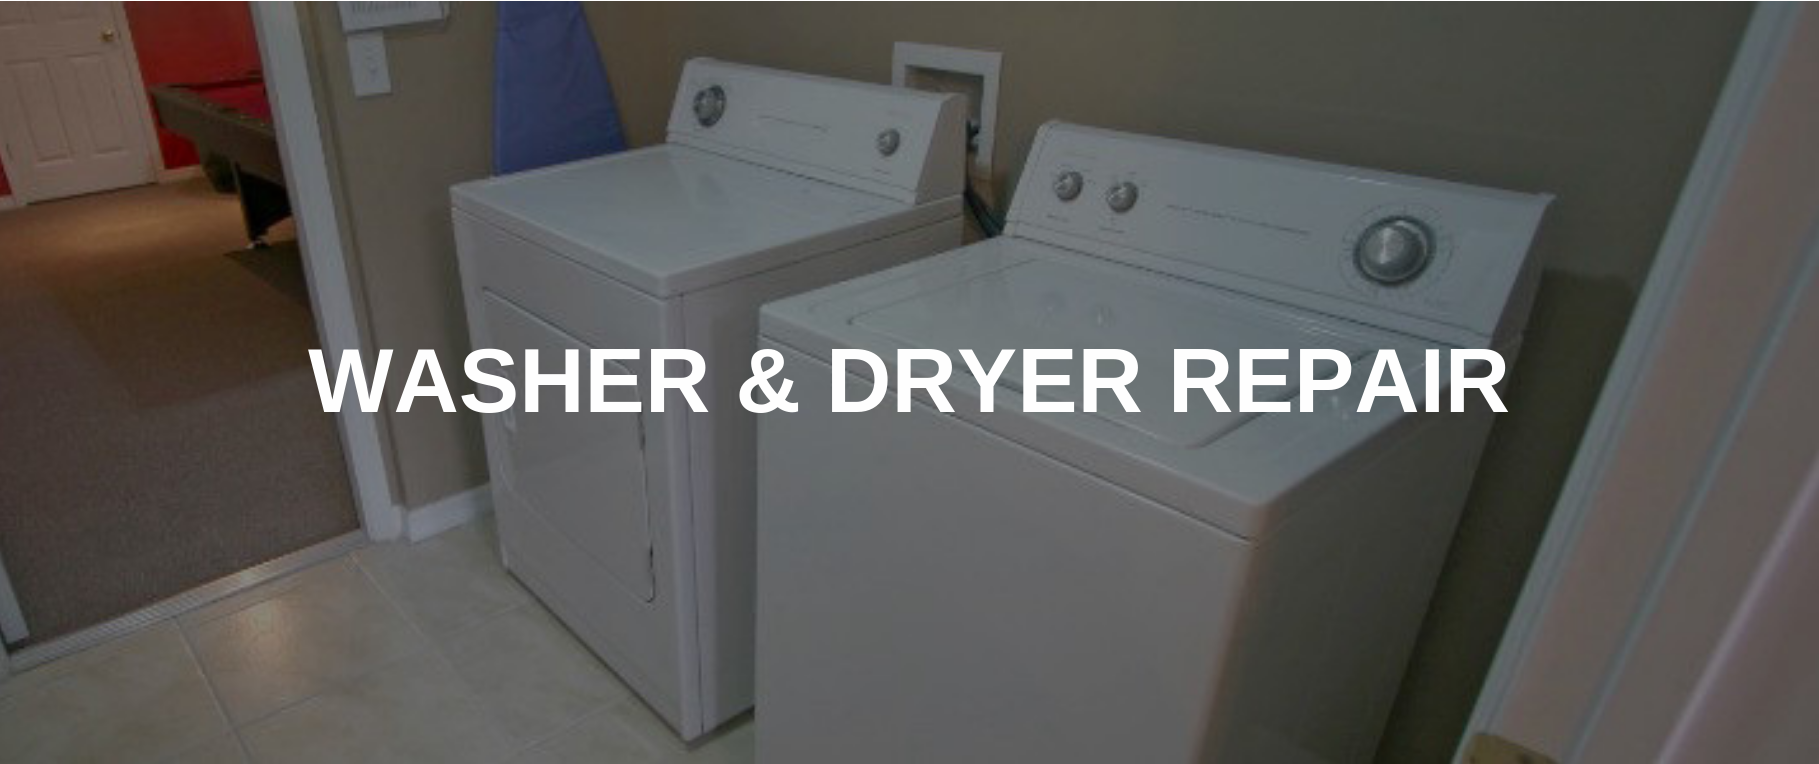 washing machine repair akron